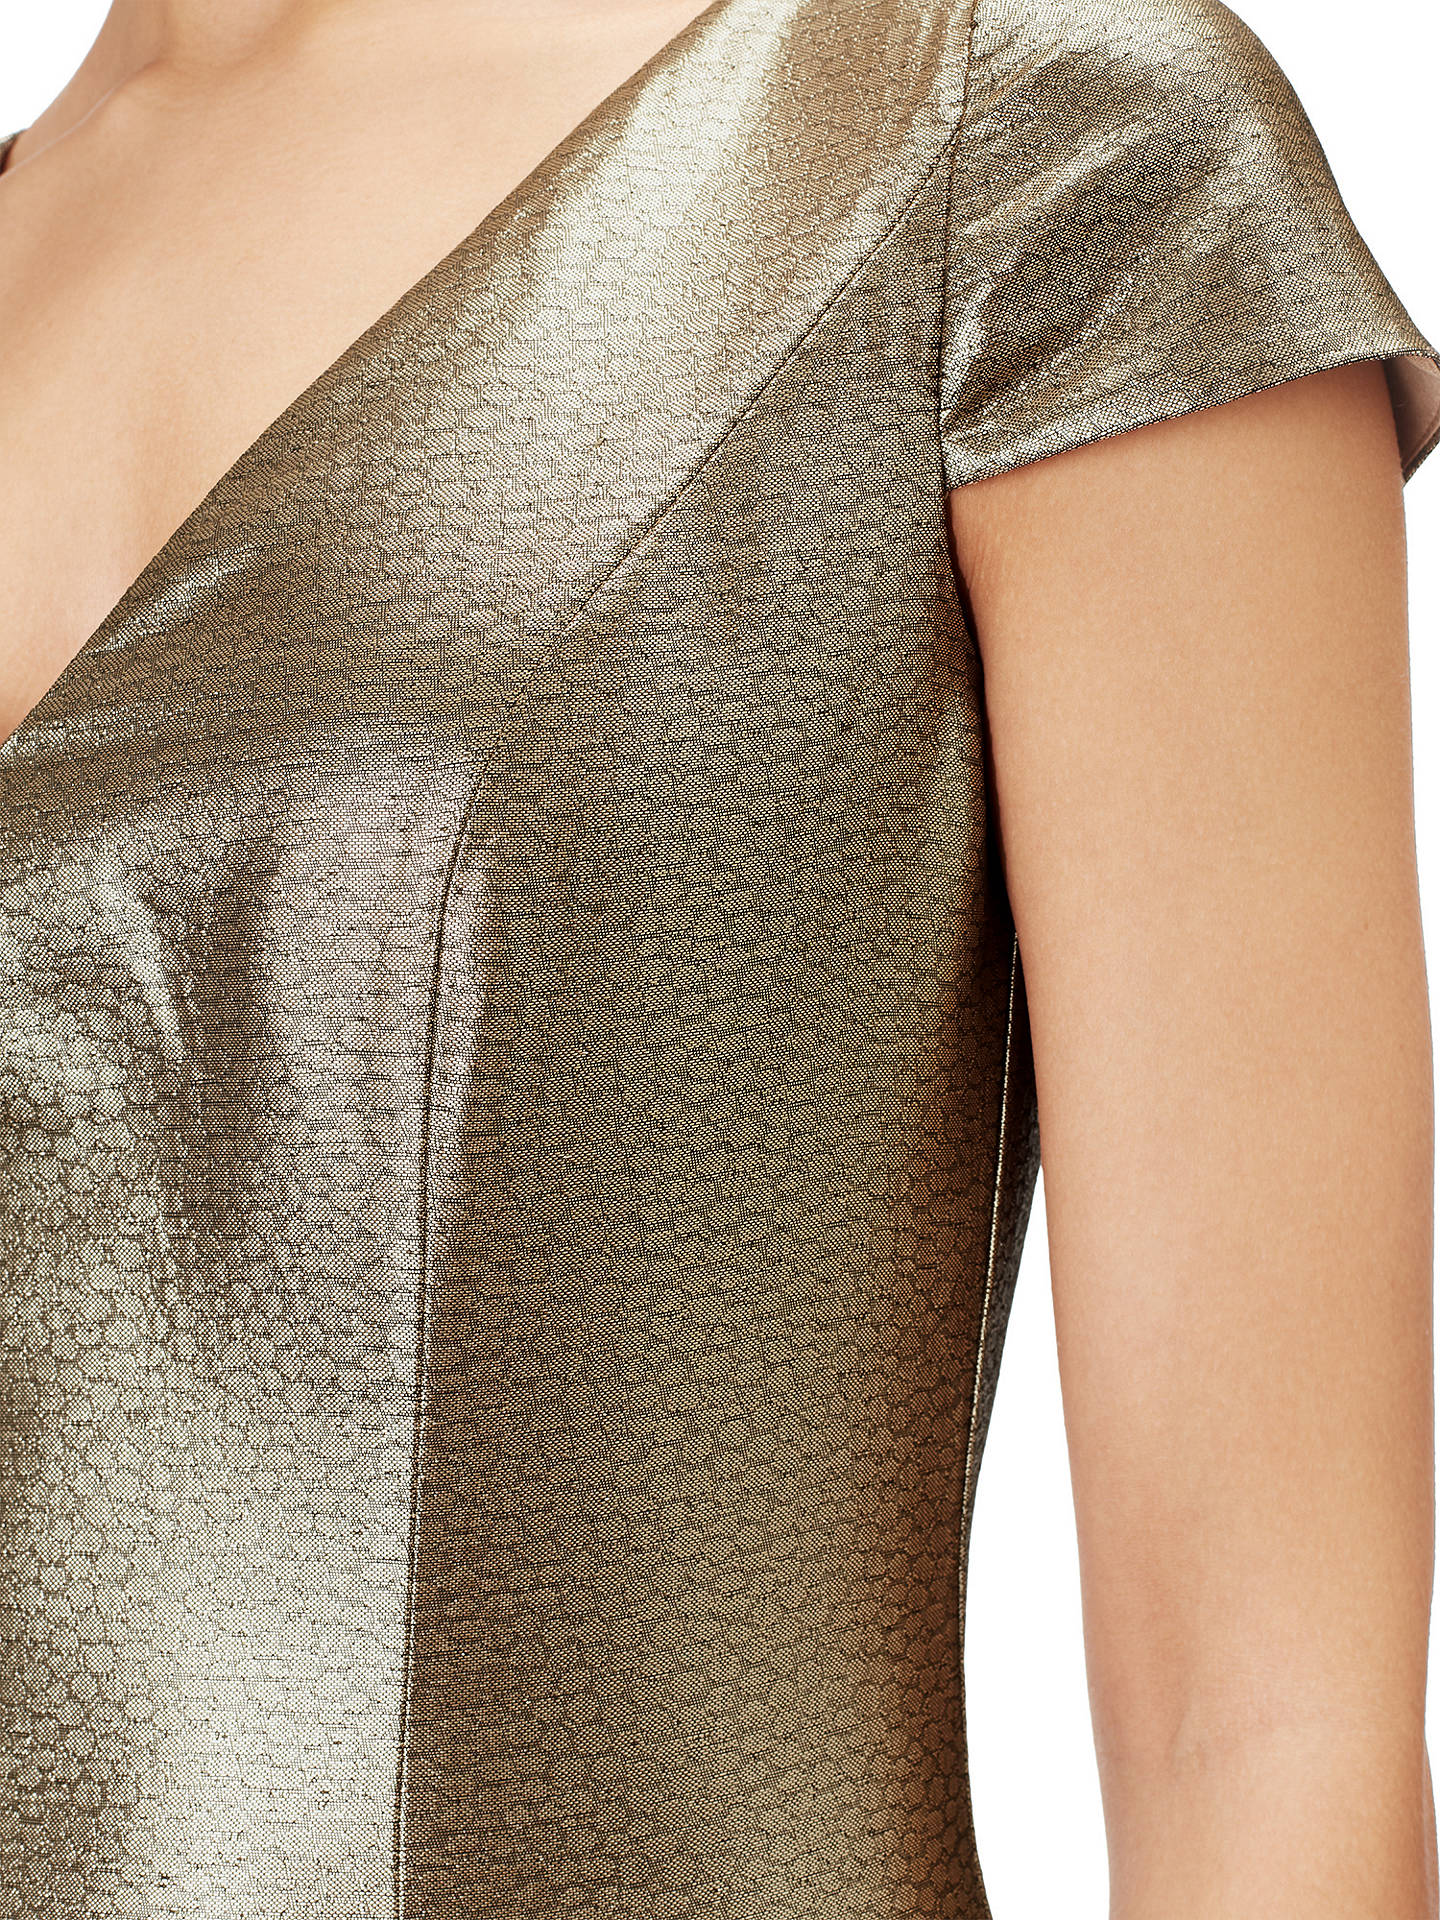 BuyAdrianna Papell Long Jacquard Dress, Gold, 8 Online at johnlewis.com